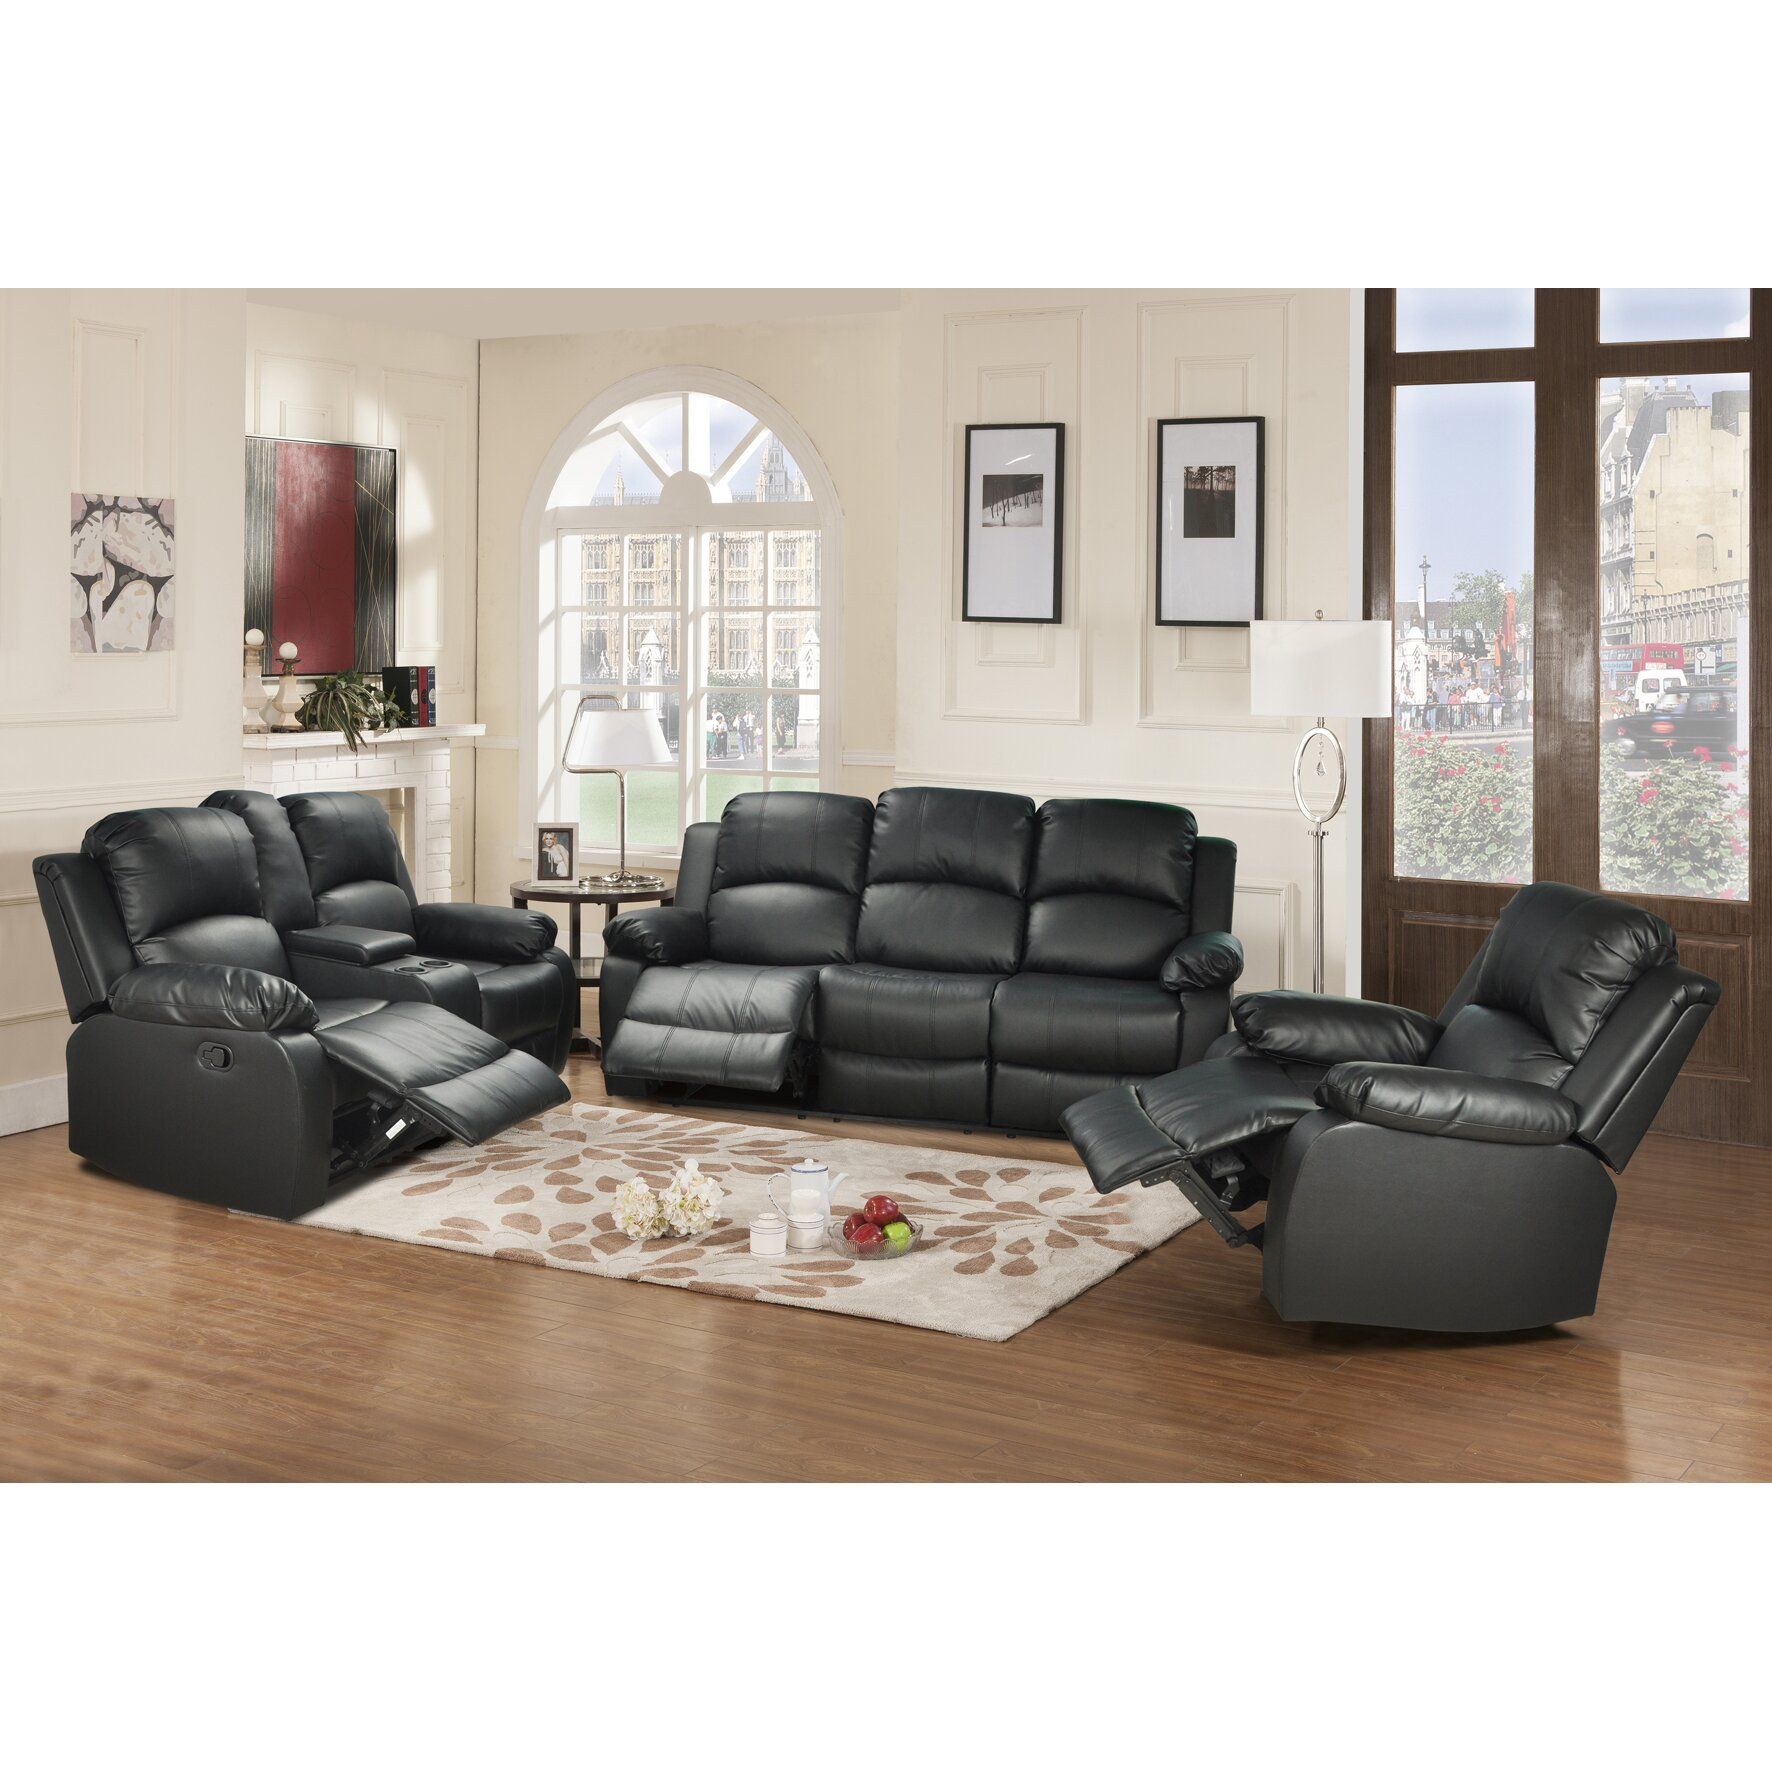 Beverly fine furniture amado 3 piece reclining living room for 3 piece living room furniture